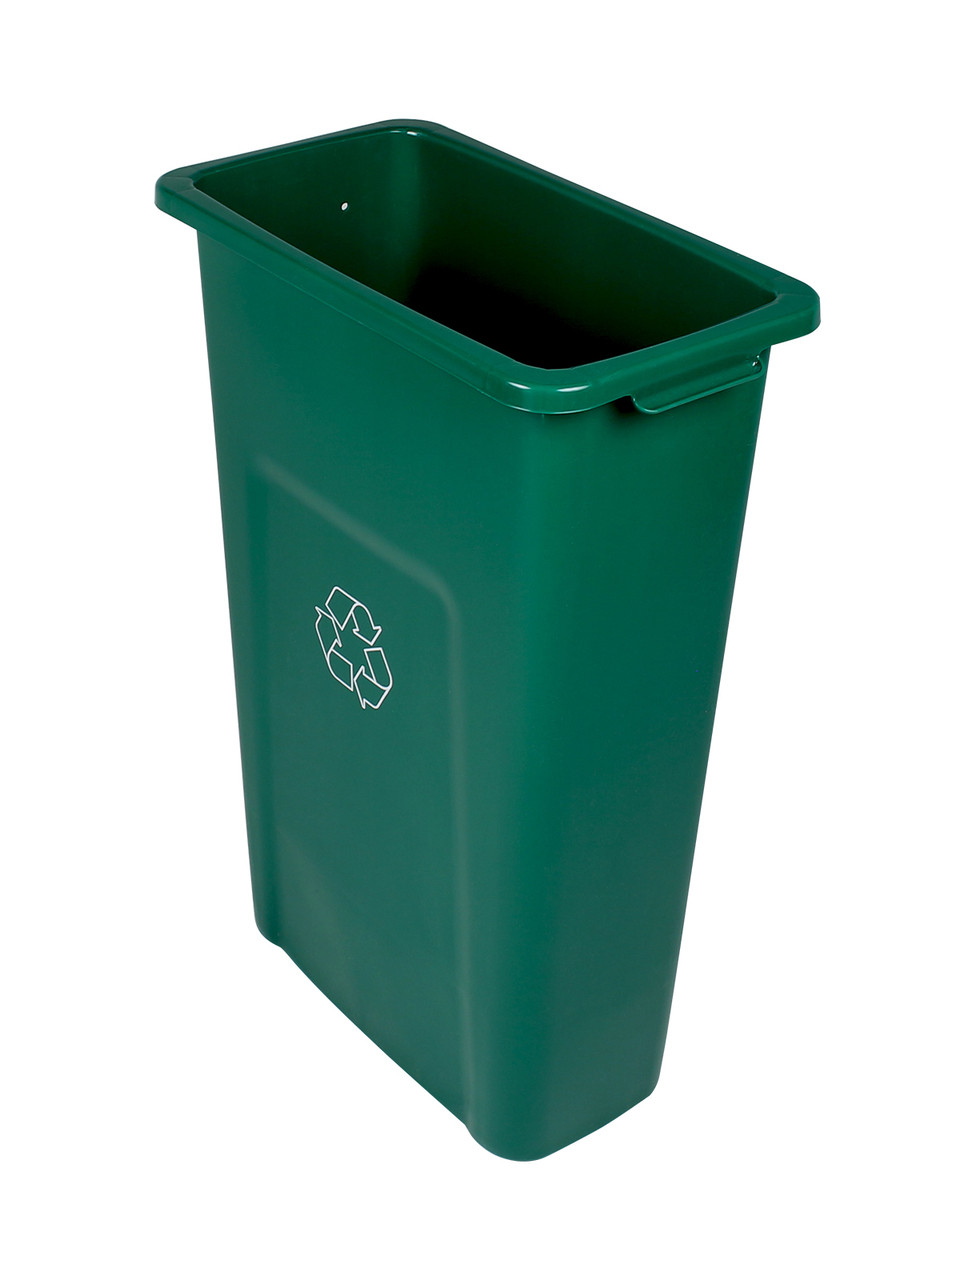 23 Gallon Skinny Recycling Bin Pre-Drilled for Signs Green